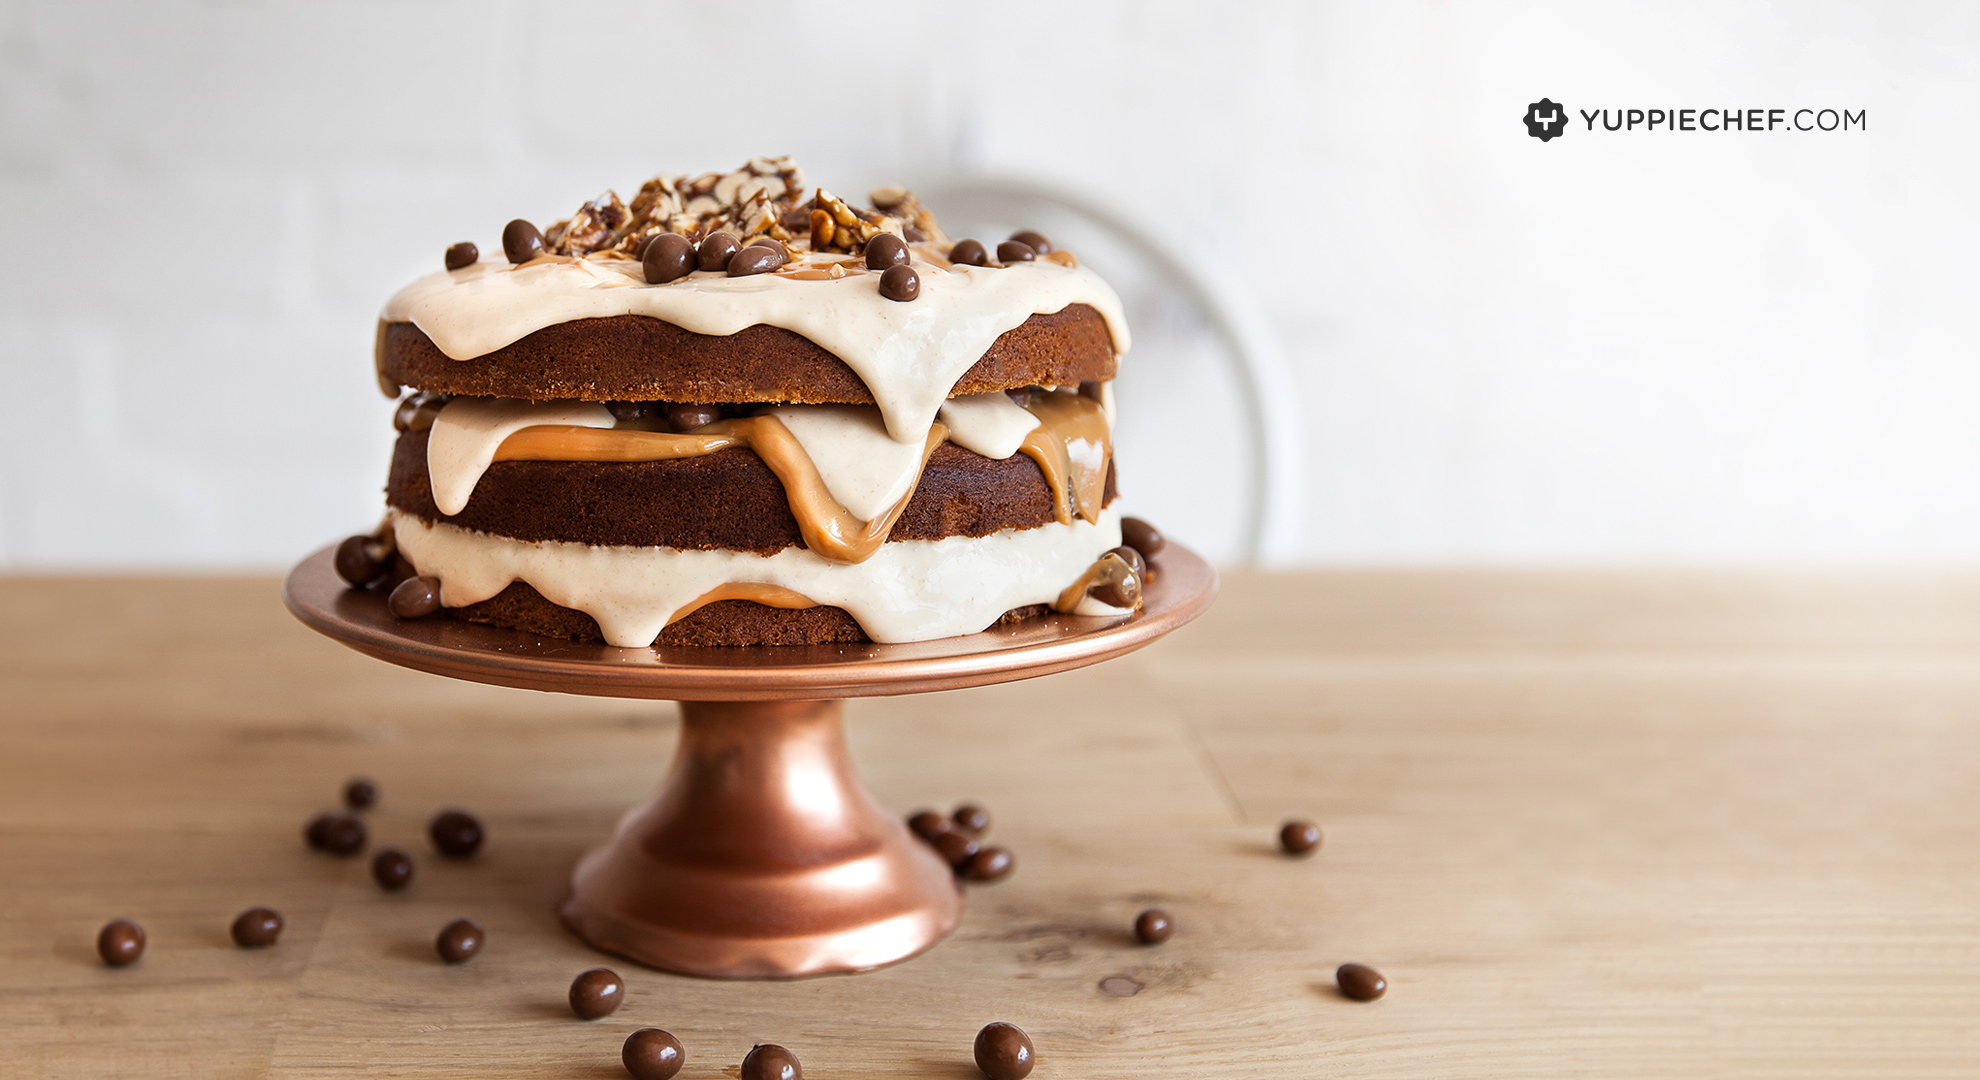 Butter Cake Recipe In Sinhala Download: March's Free Wallpaper: Peanut Butter Cake For Your Screen